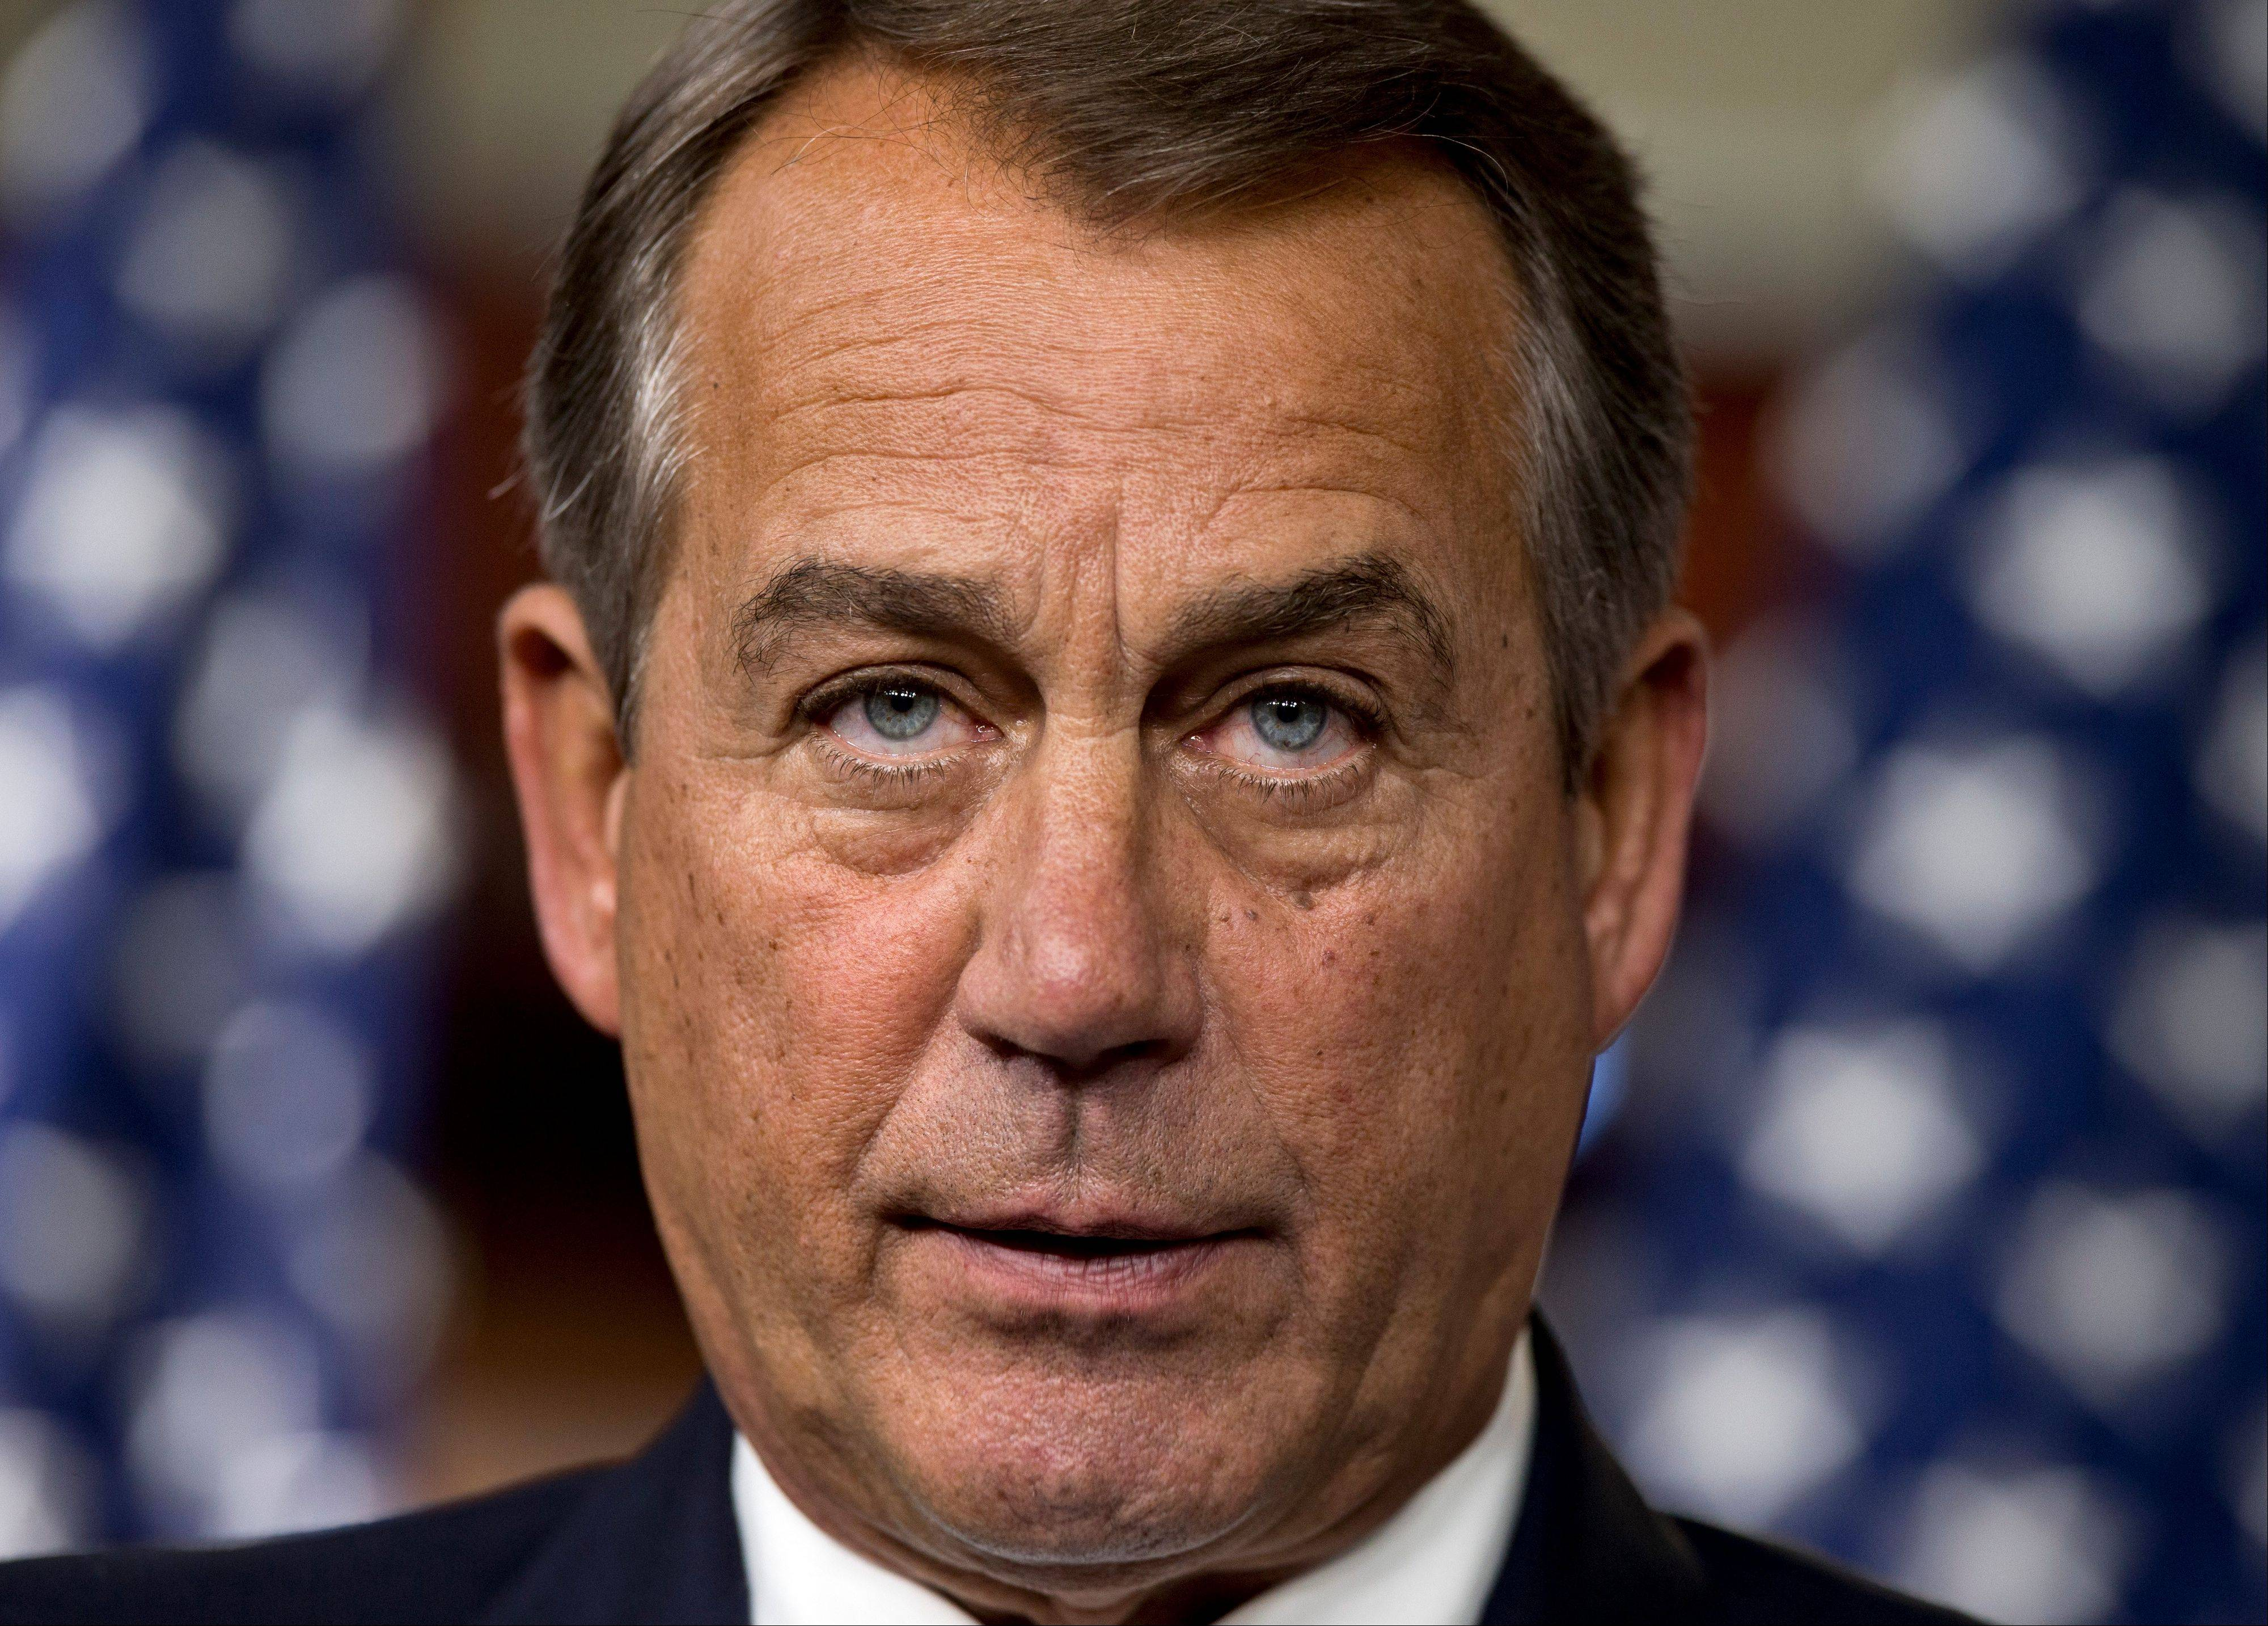 House Speaker John Boehner, seen here, other members of Congress and the White House are locked in yet another compromise-or-else deadline Friday.